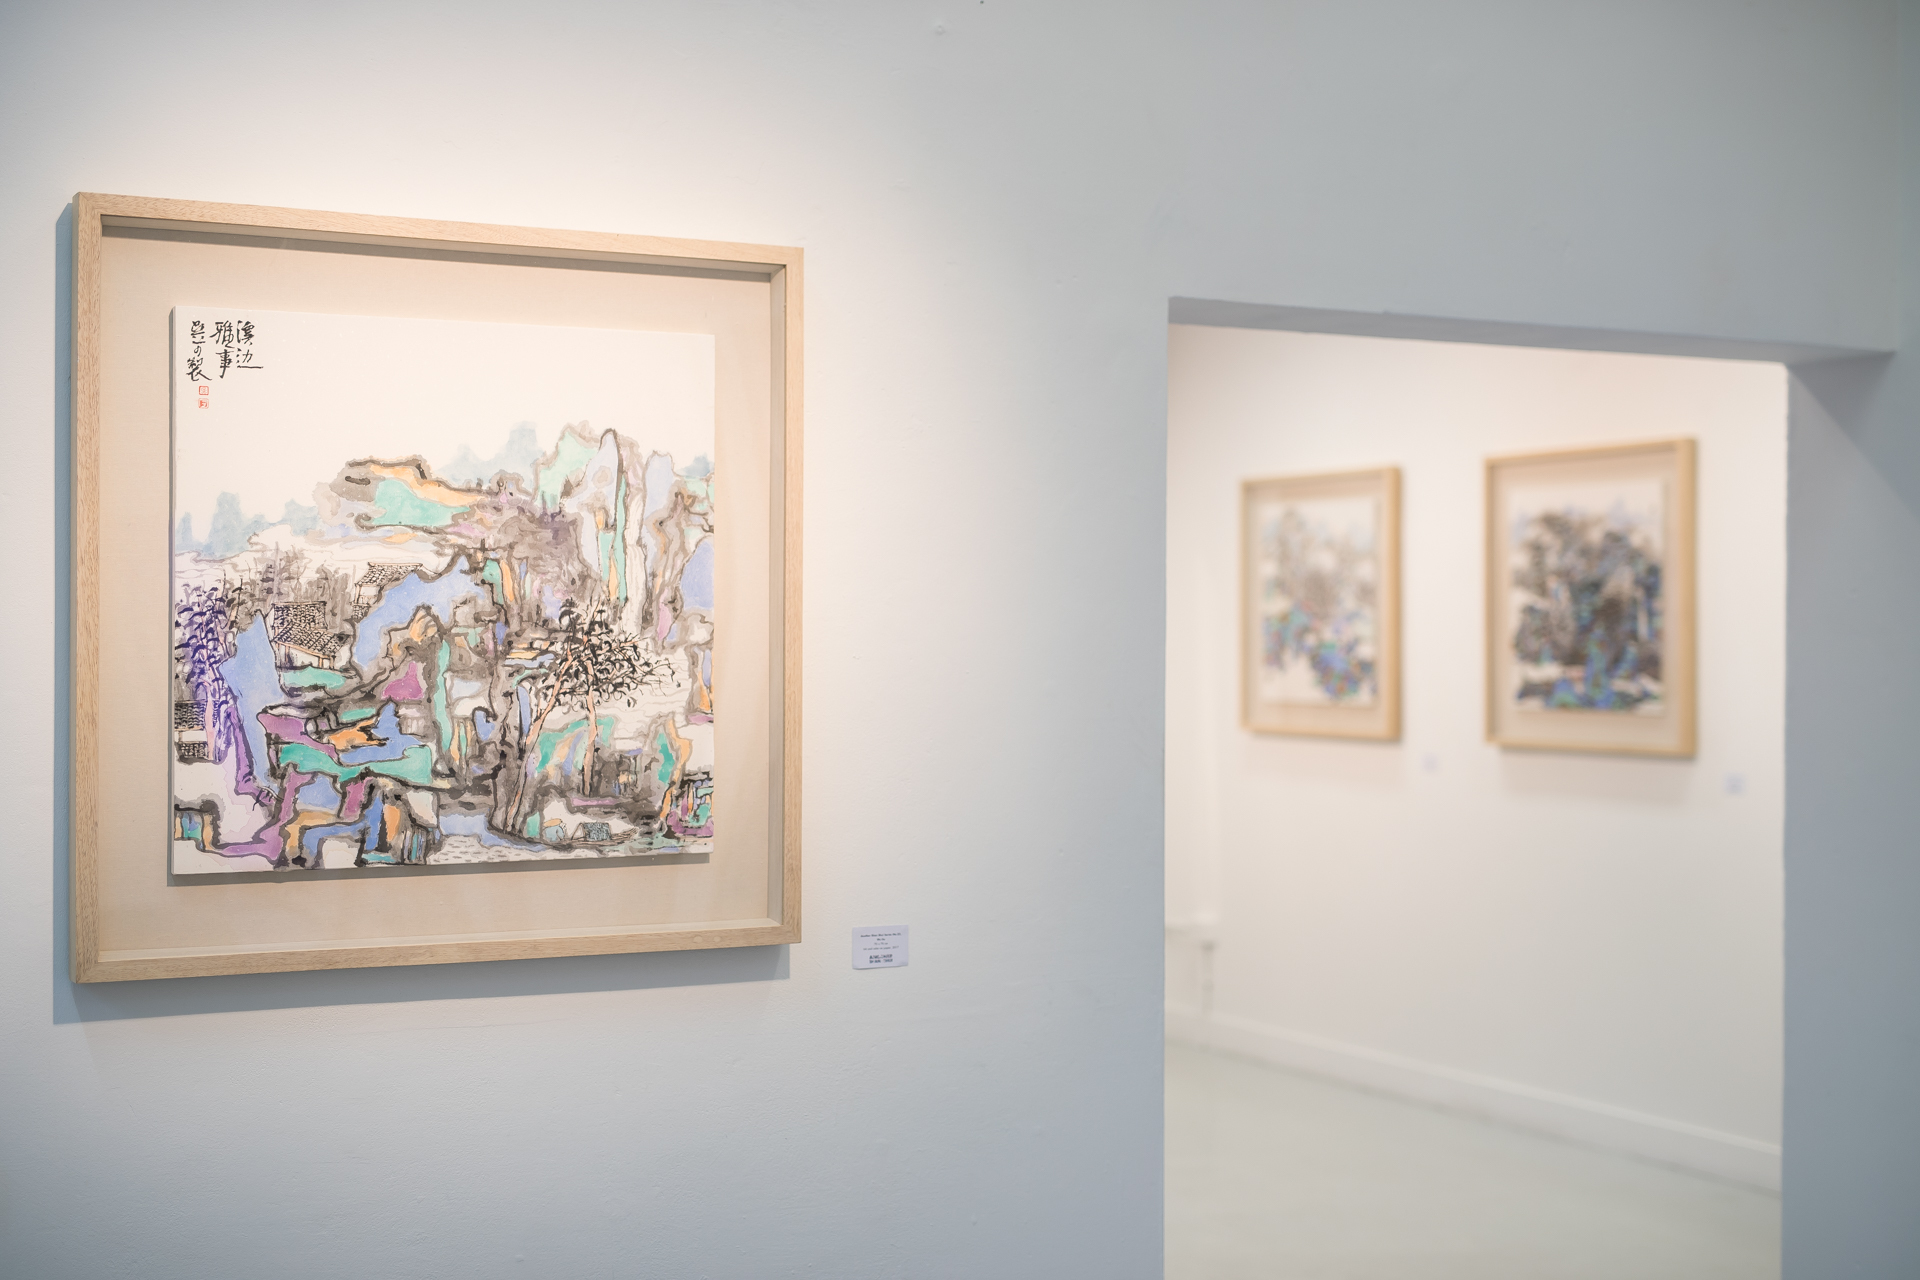 'Another Shan Shui' at London's Cookhouse Gallery is the artist'sfirst outside China(Image:Aris Huang)